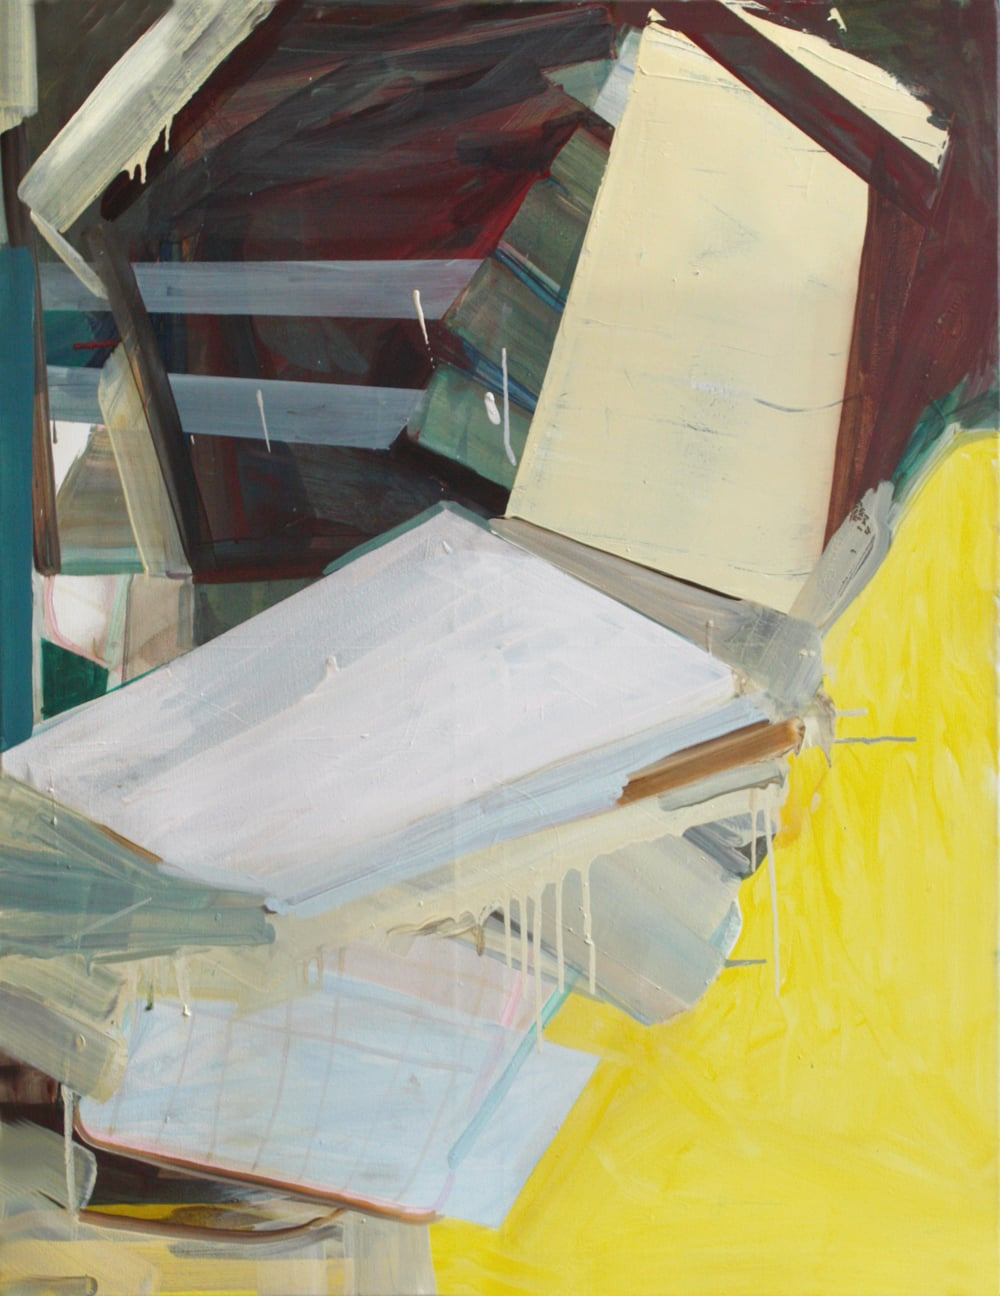 'Klettergerust I' 2012 Oil on canvas 100 x 78 cm